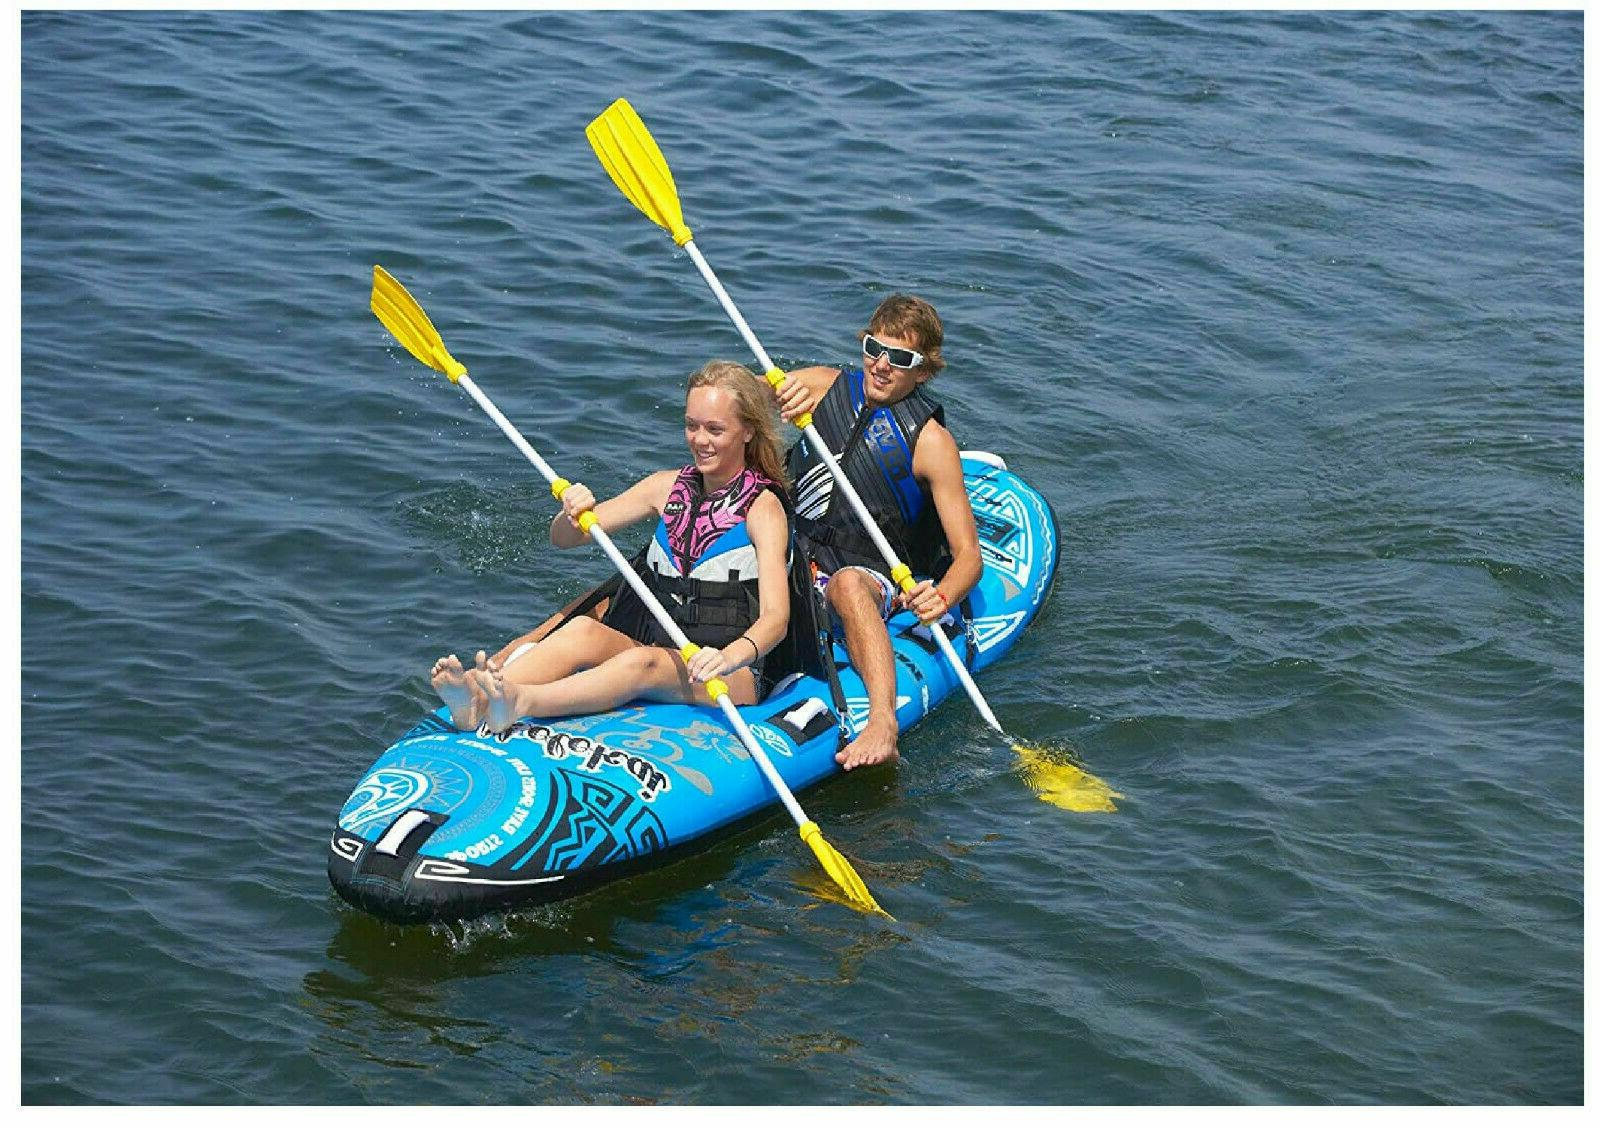 Inflatable person Kayak summer fun, , Top Selling